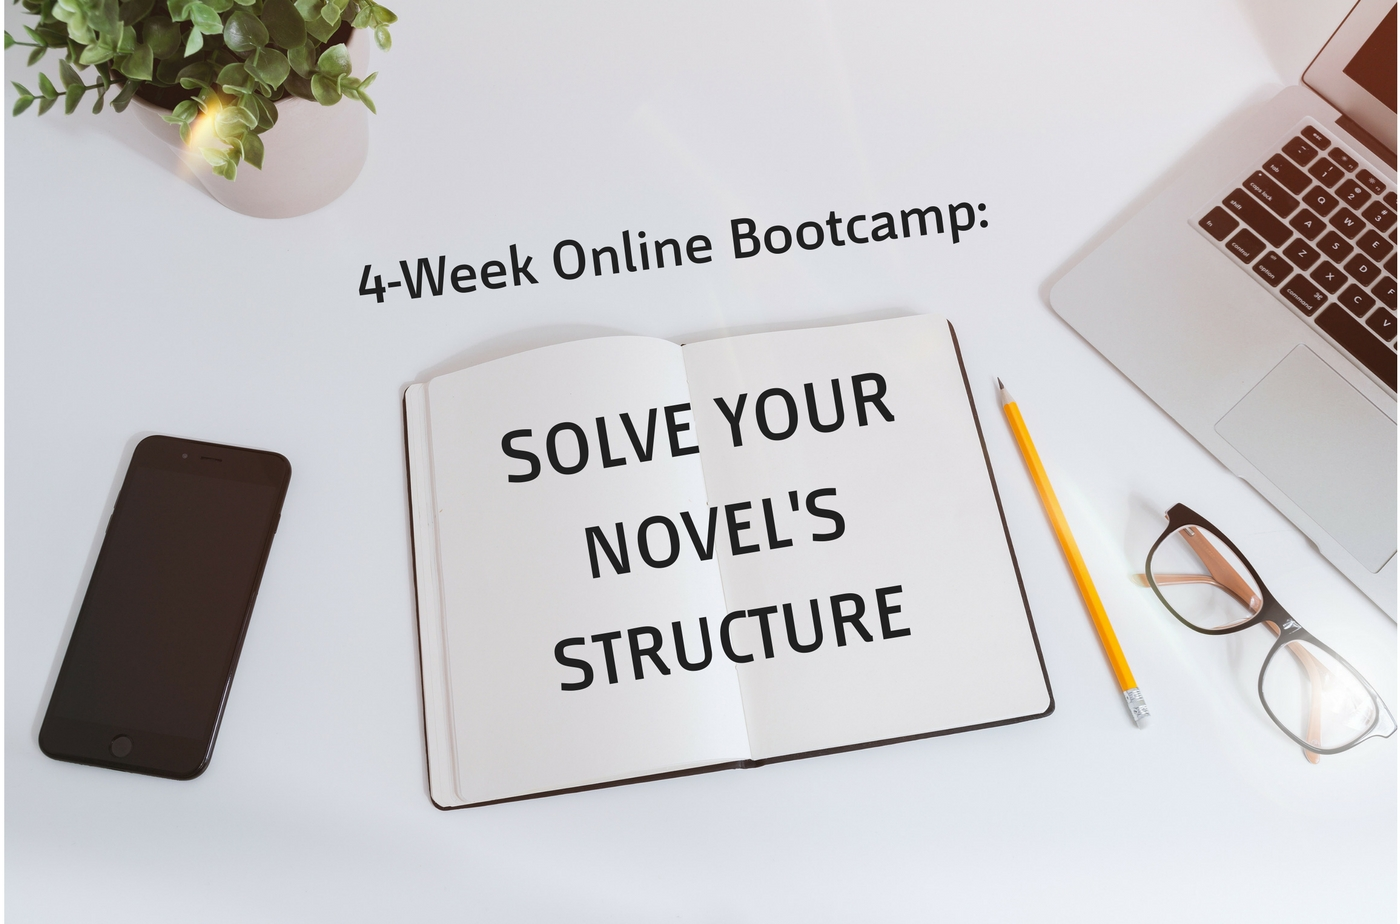 Catapult online classes: Stephanie Feldman, 4-Week Online Bootcamp: Solve Your Novel's Structure, Novel, Bootcamp